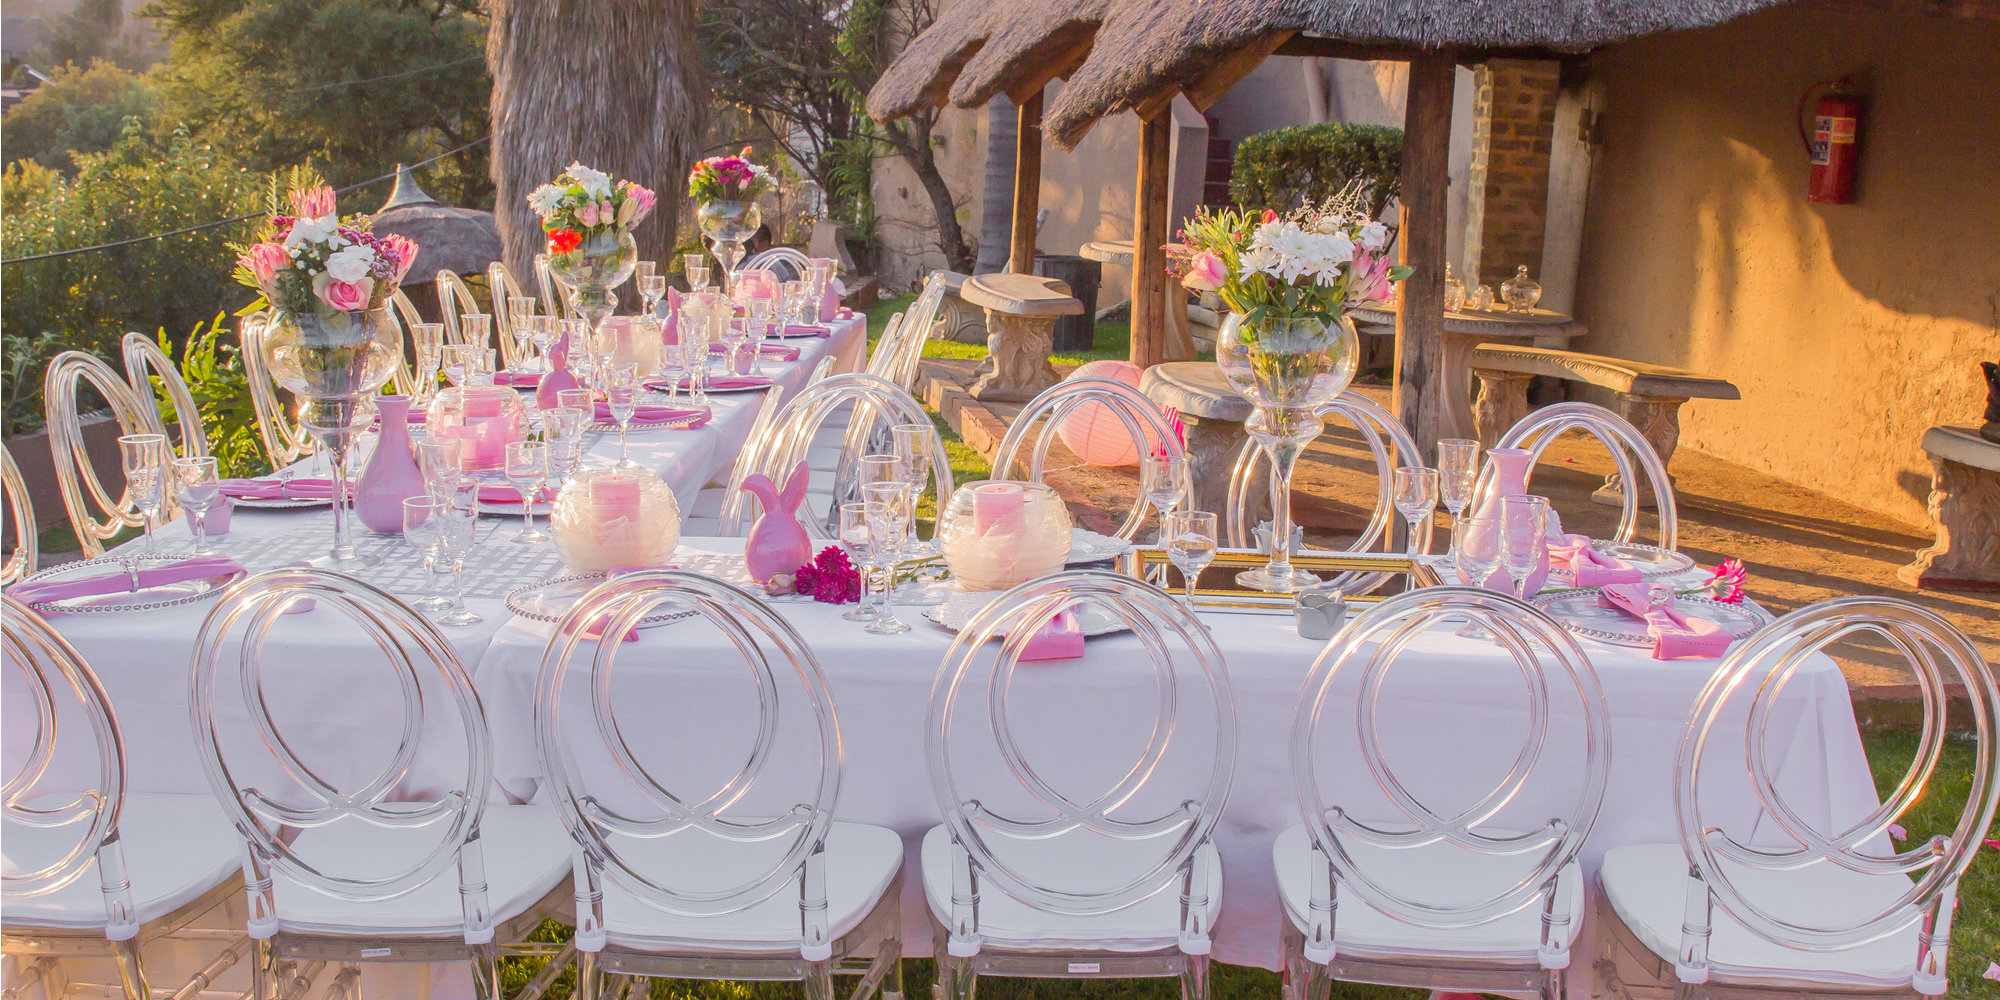 Spring is the perfect time of year to throw bridal showers. These Spring bridal shower themes will have you so excited to start party planning.